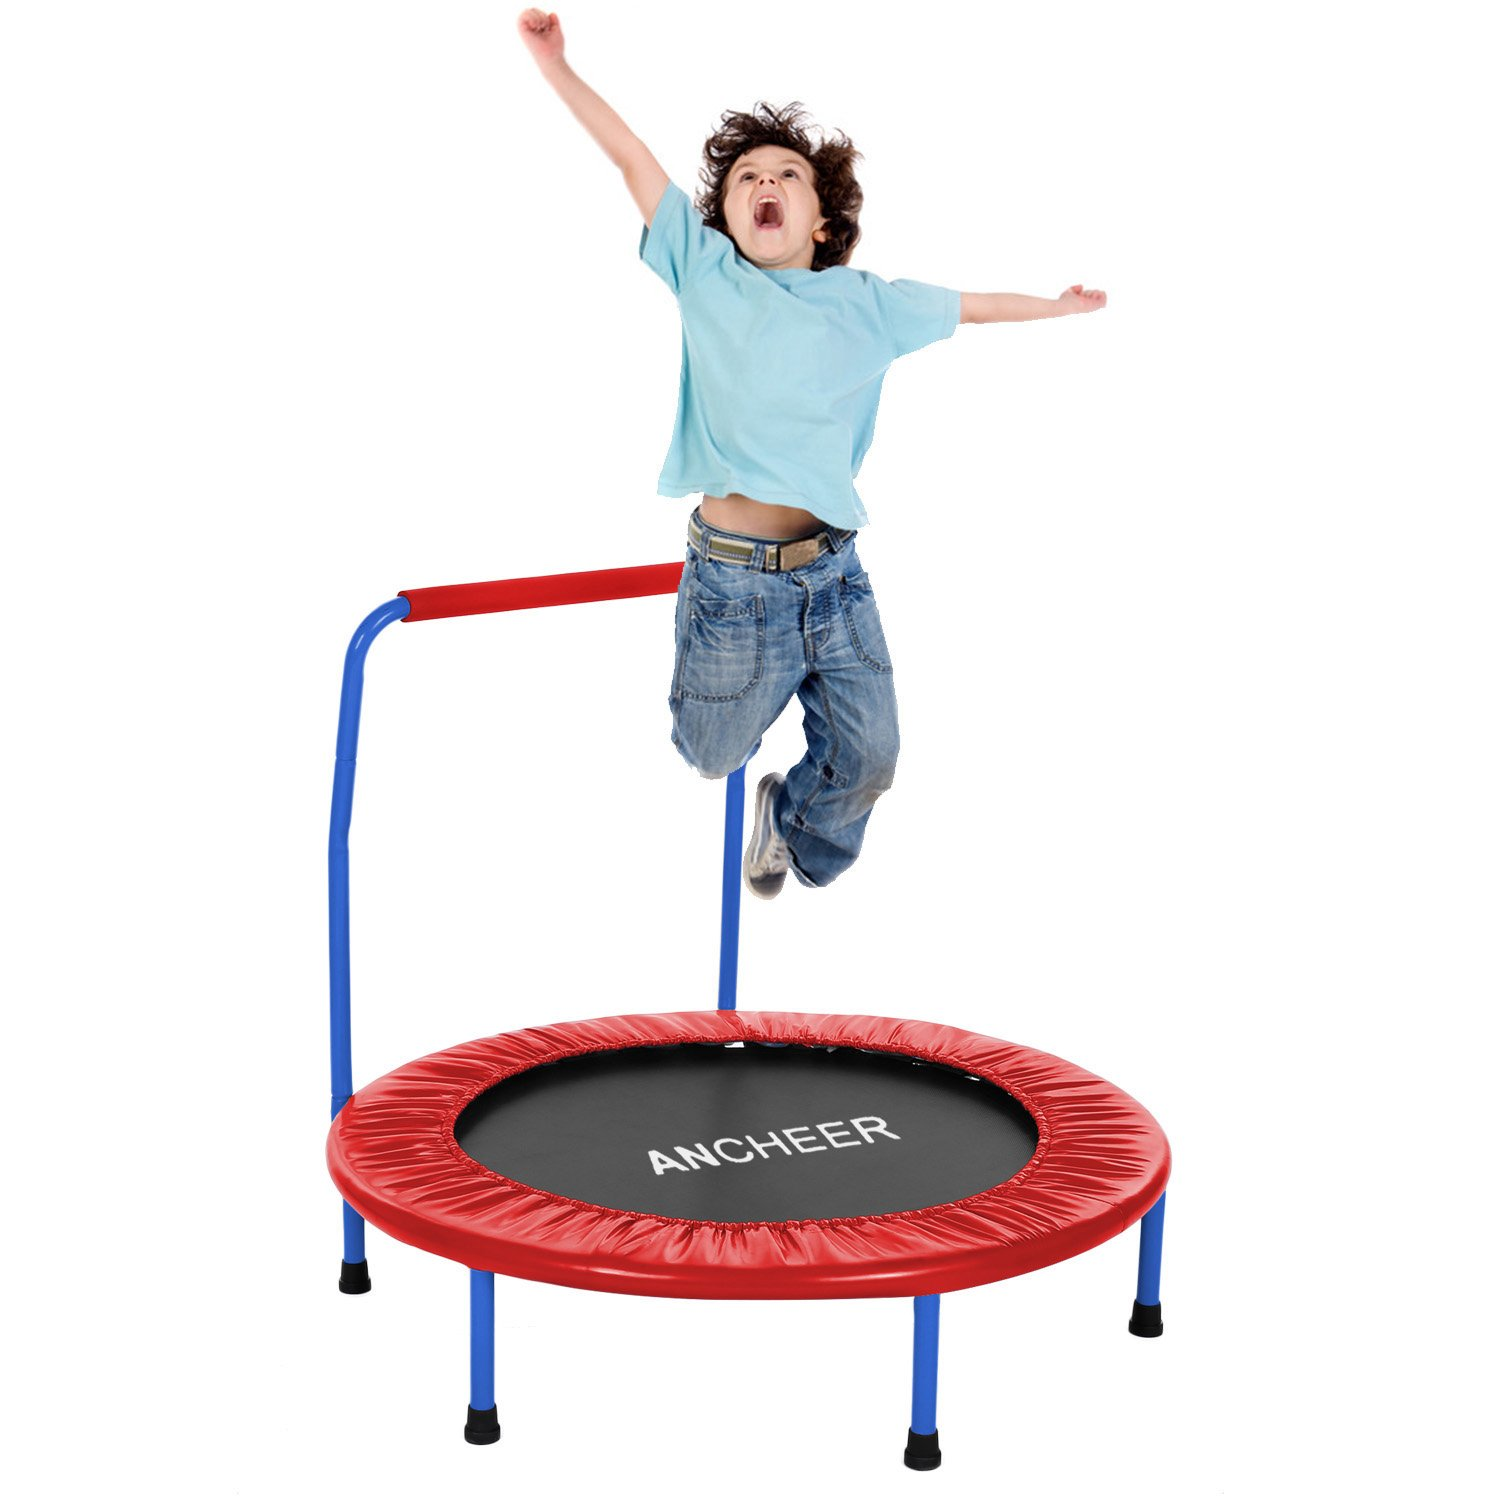 ANCHEER 36 inch diameter Mini Rebounder Trampoline with Handrail, Safe Trampoline for Kids, suitable for indoor and outdoor use (Red)